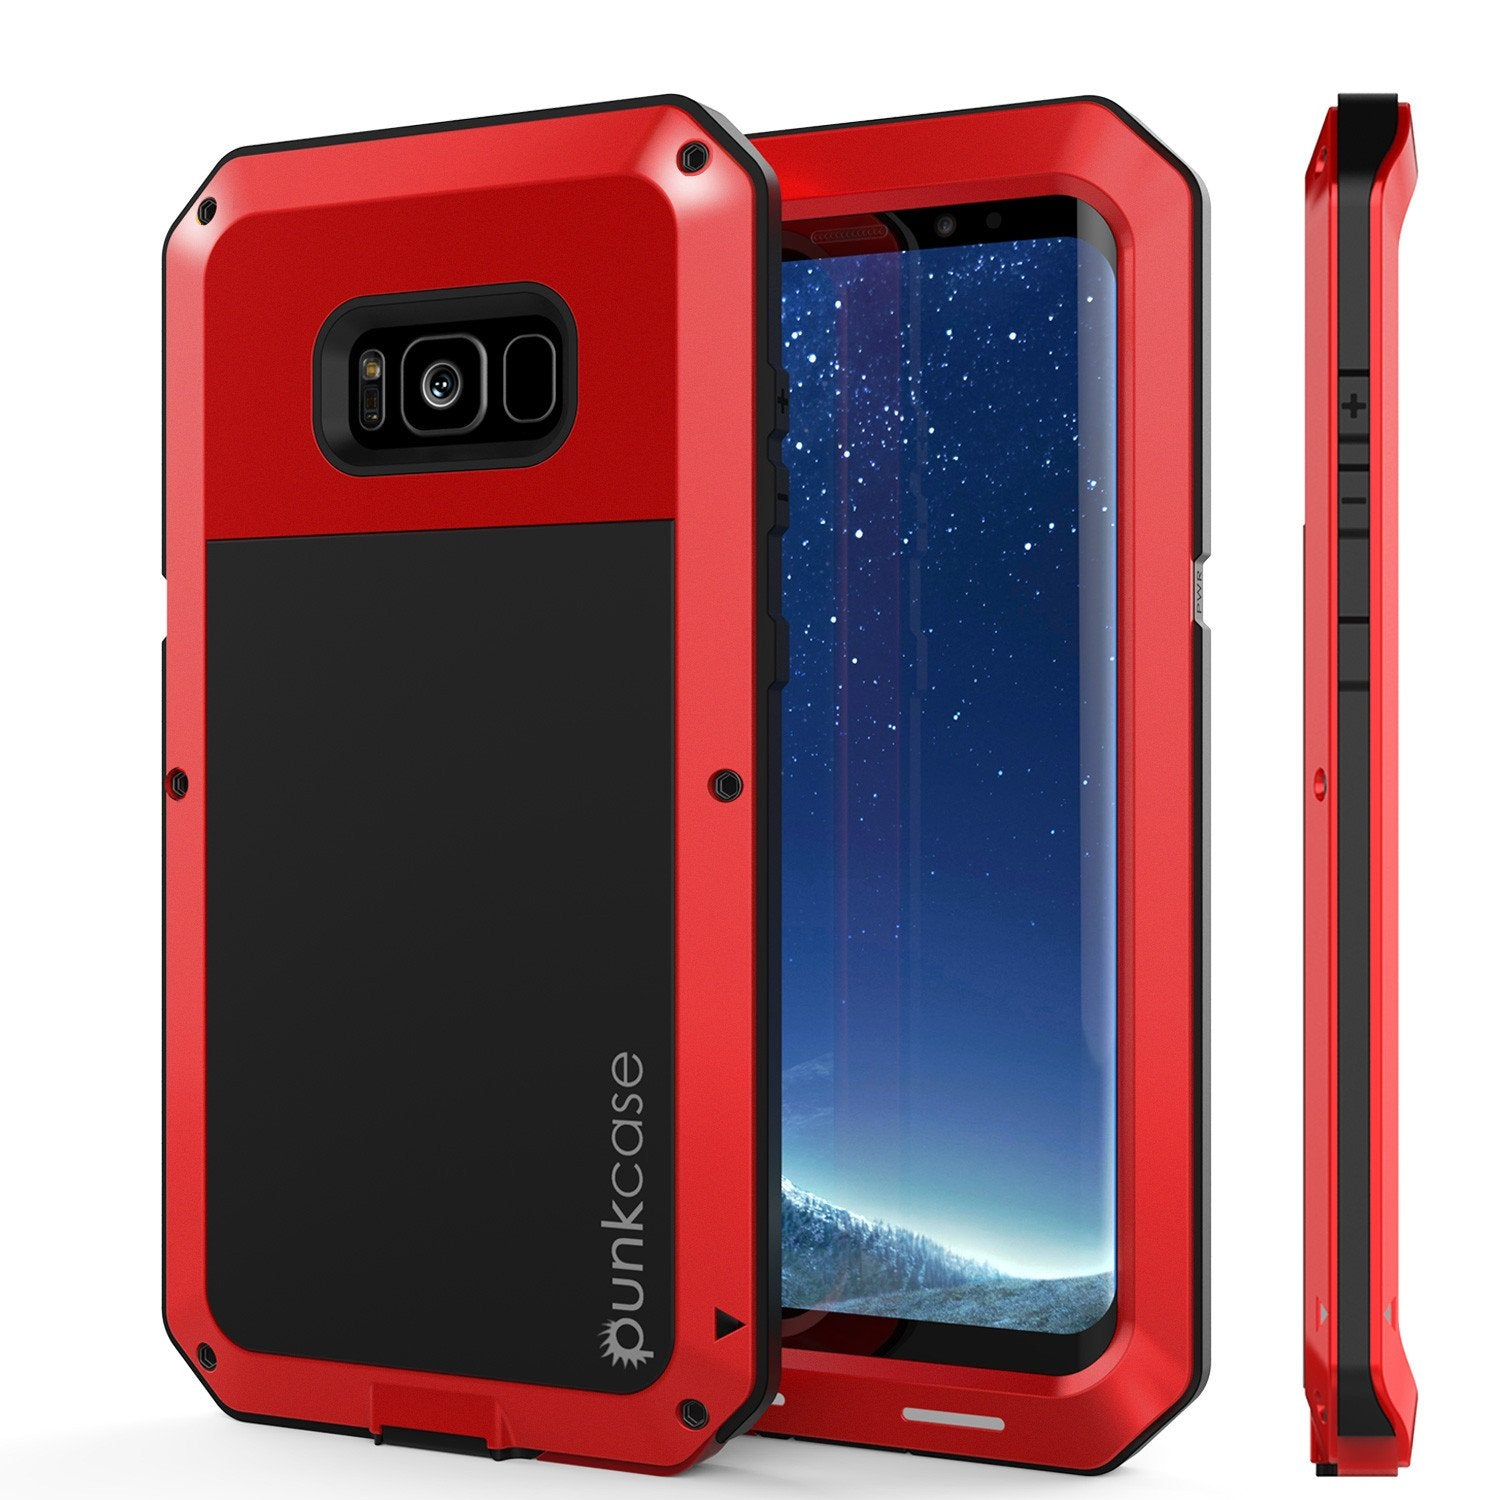 Galaxy S8+ Plus Metal Case, Heavy Duty Military Grade Rugged Armor Cover [shock proof] W/ Prime Drop Protection [RED]